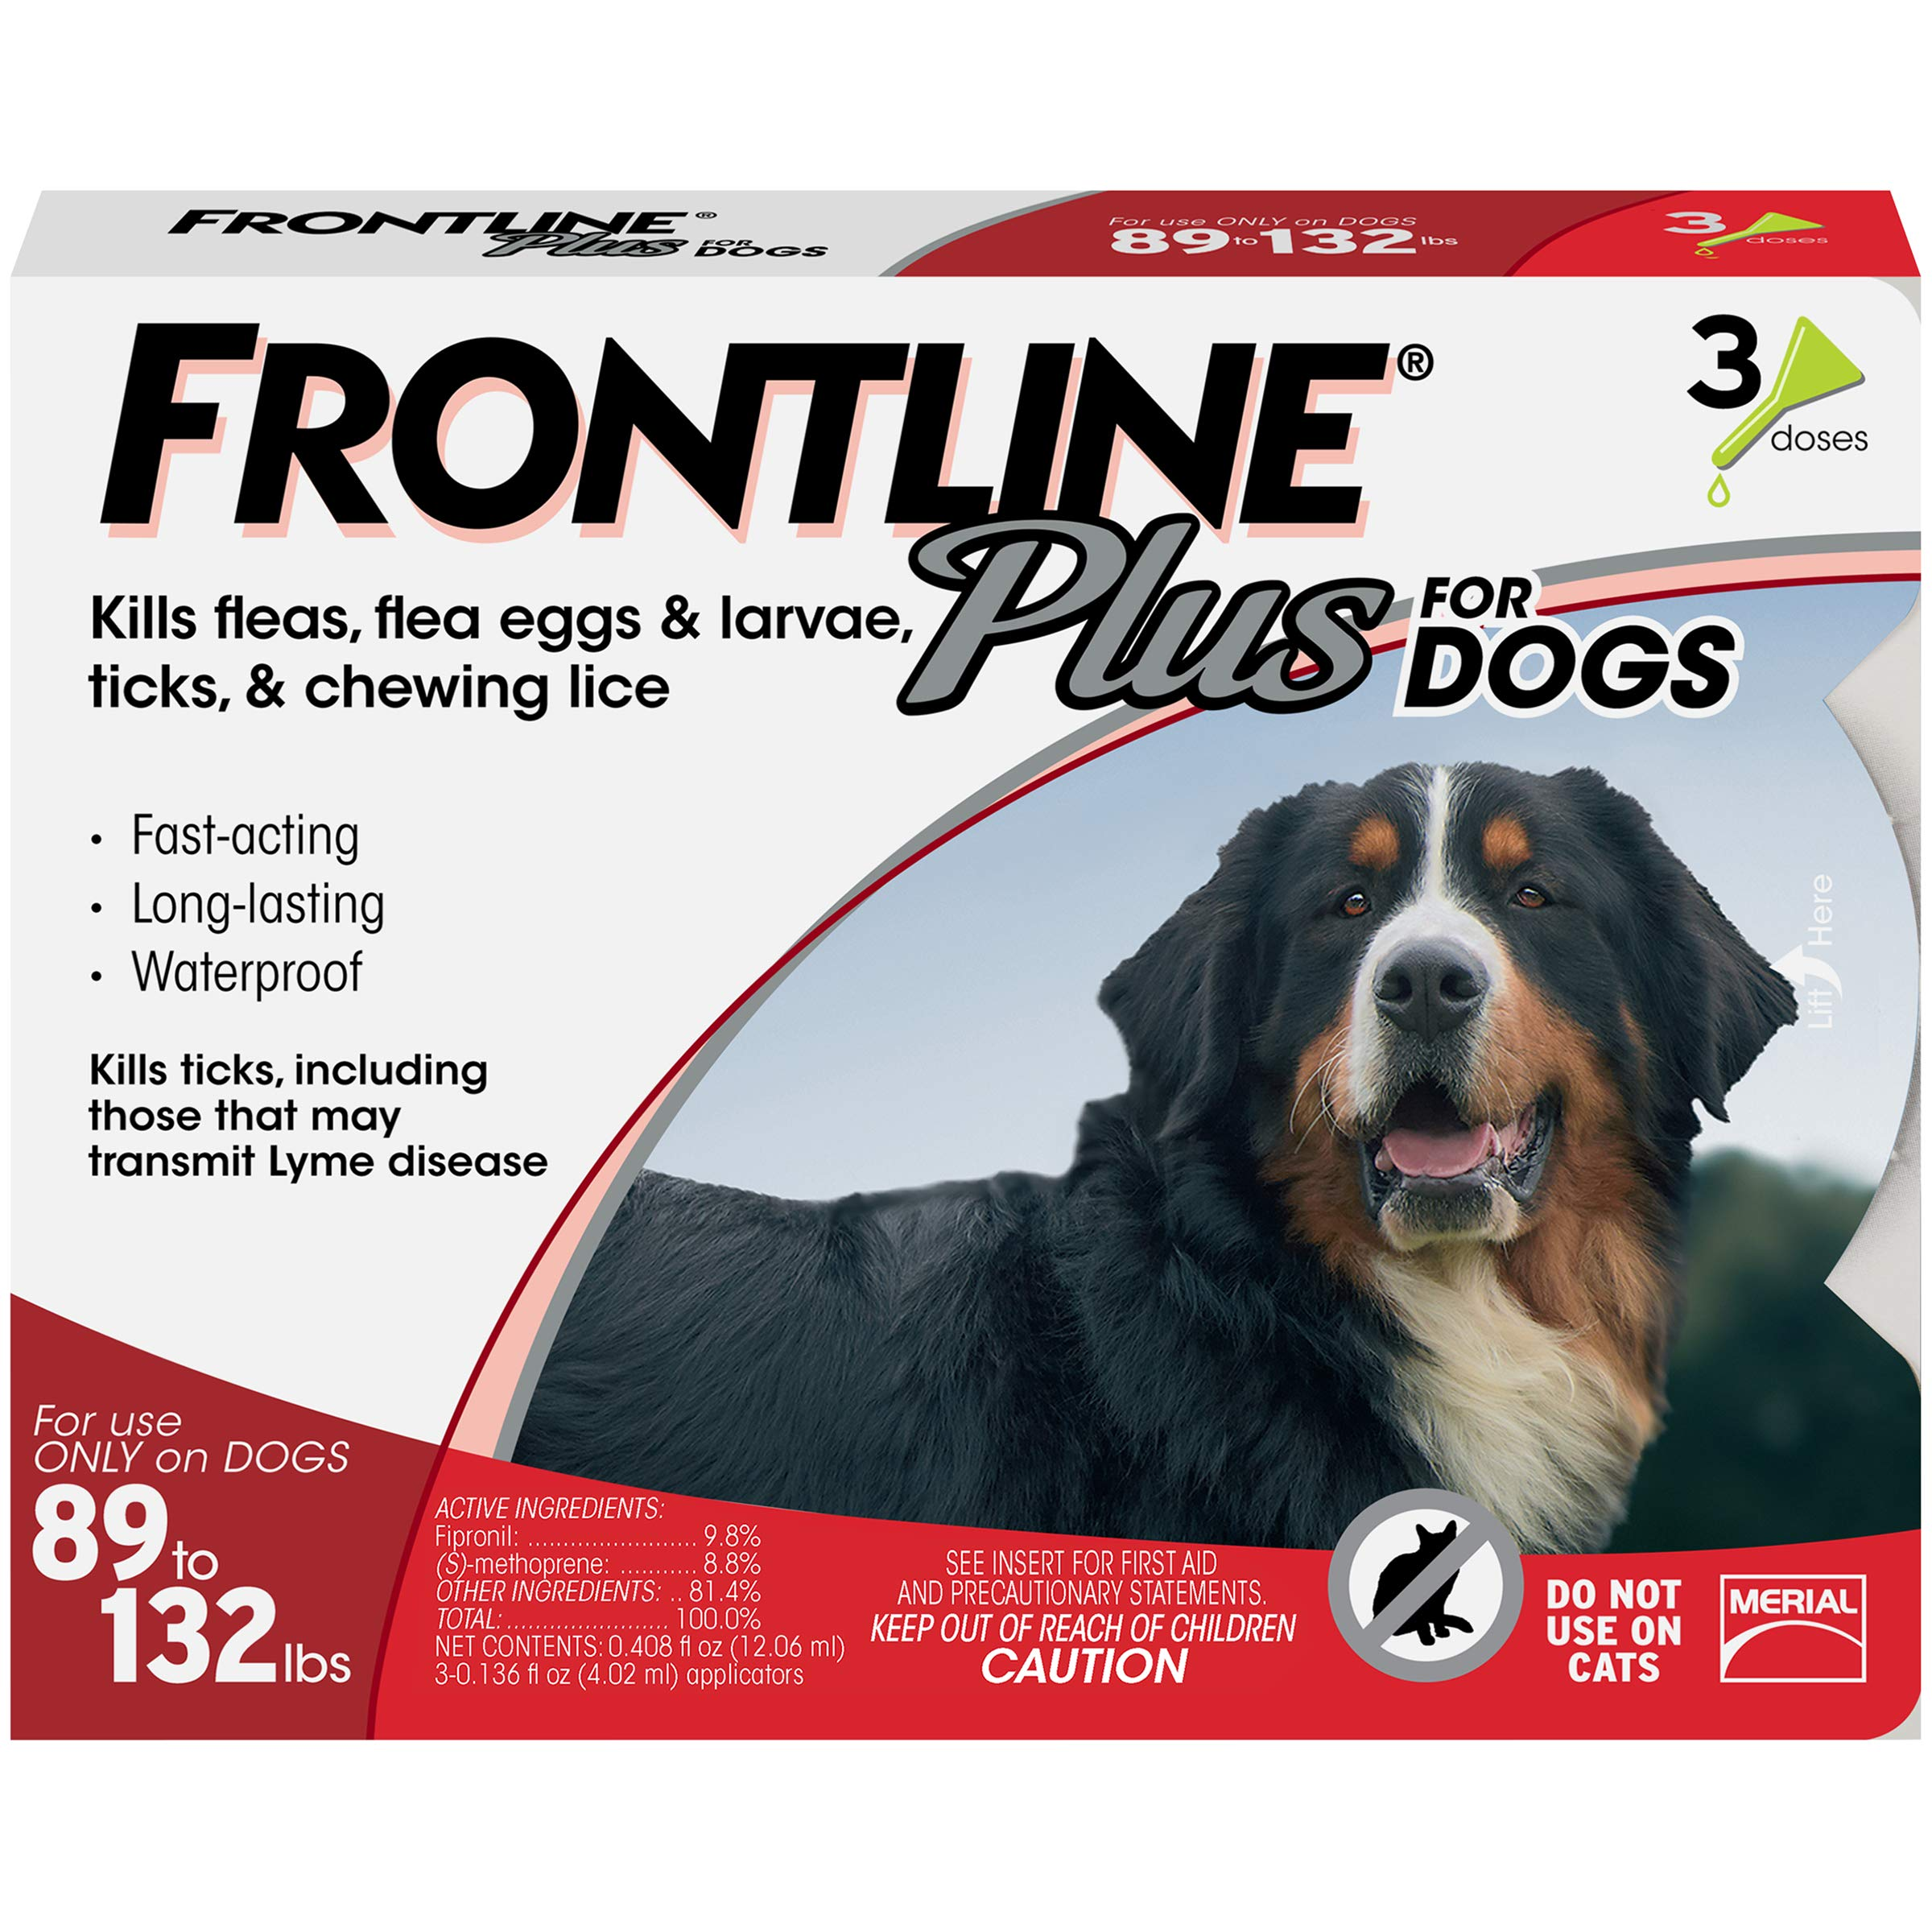 Frontline Plus for Extra Large Dogs (89 to 132 pounds) Flea and Tick Treatment, 3 Doses by Frontline